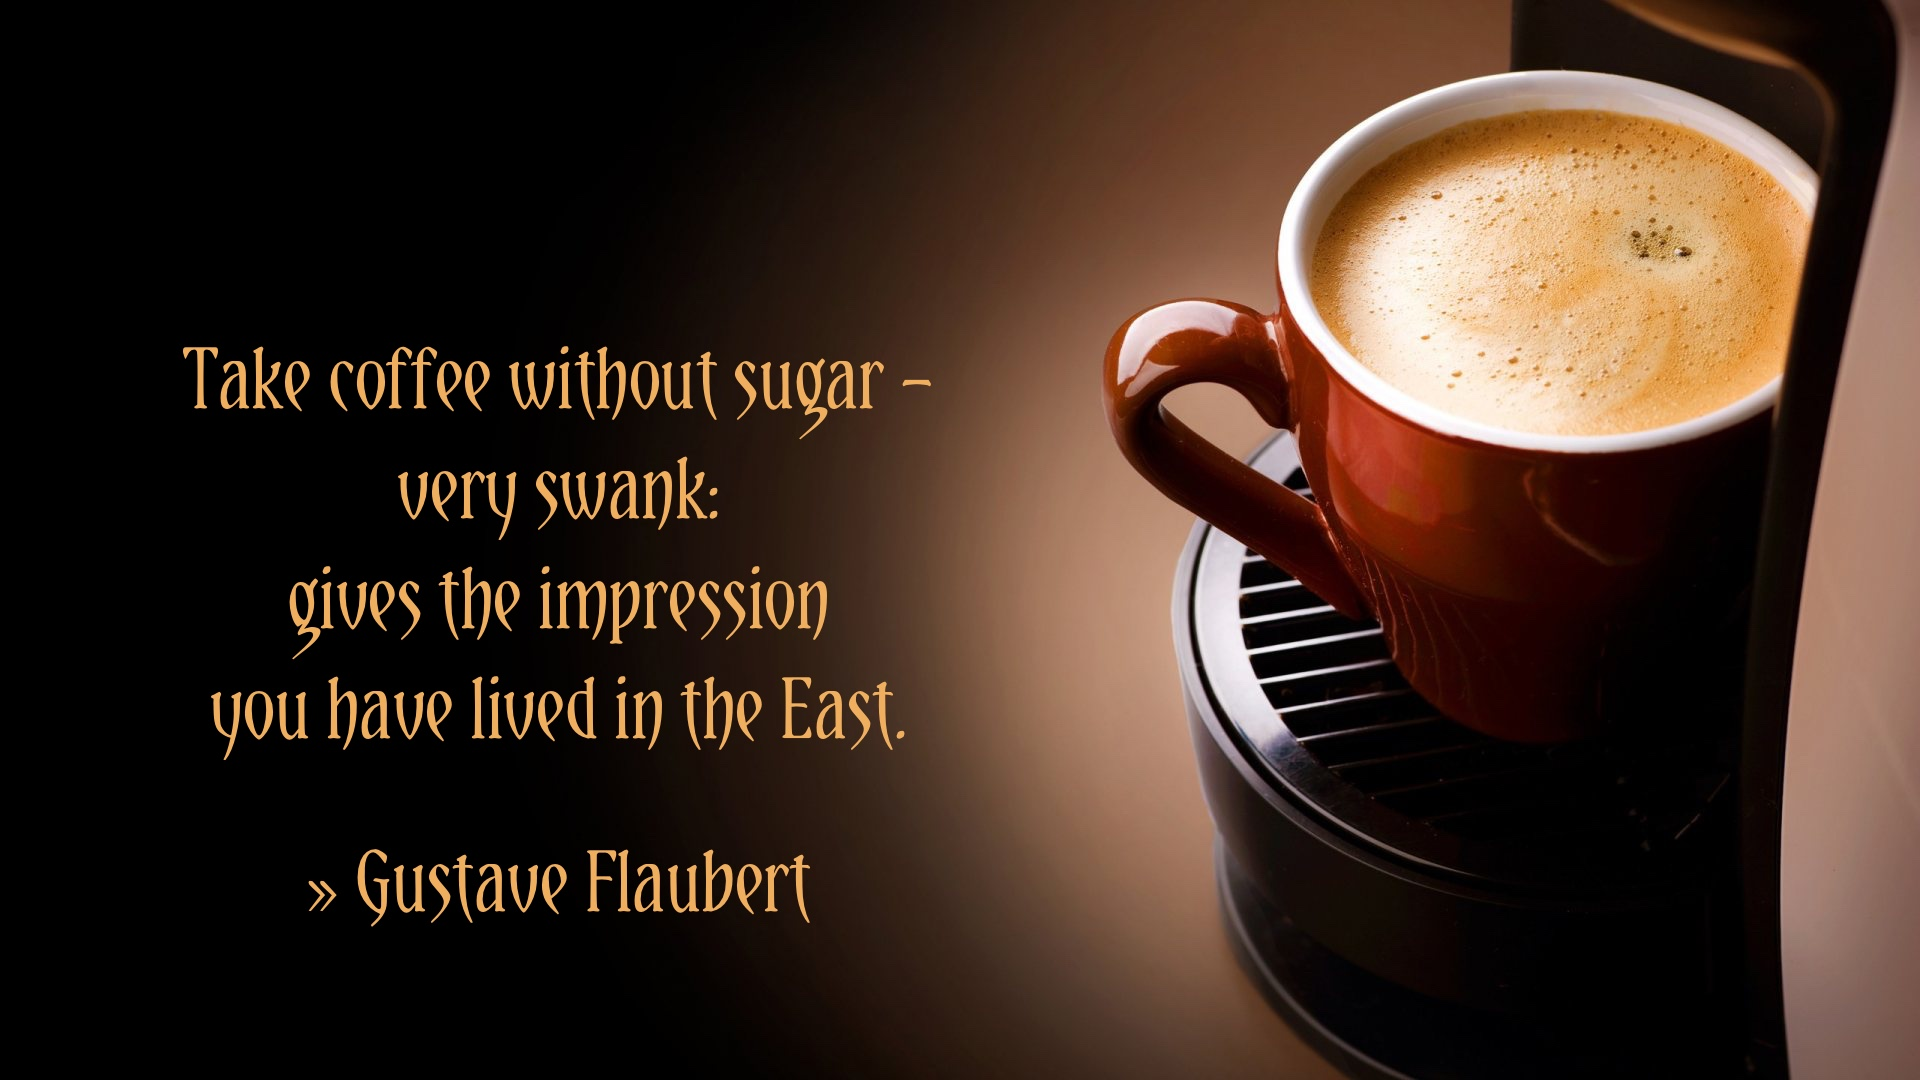 Gustave Flaubert Quote by RSeer